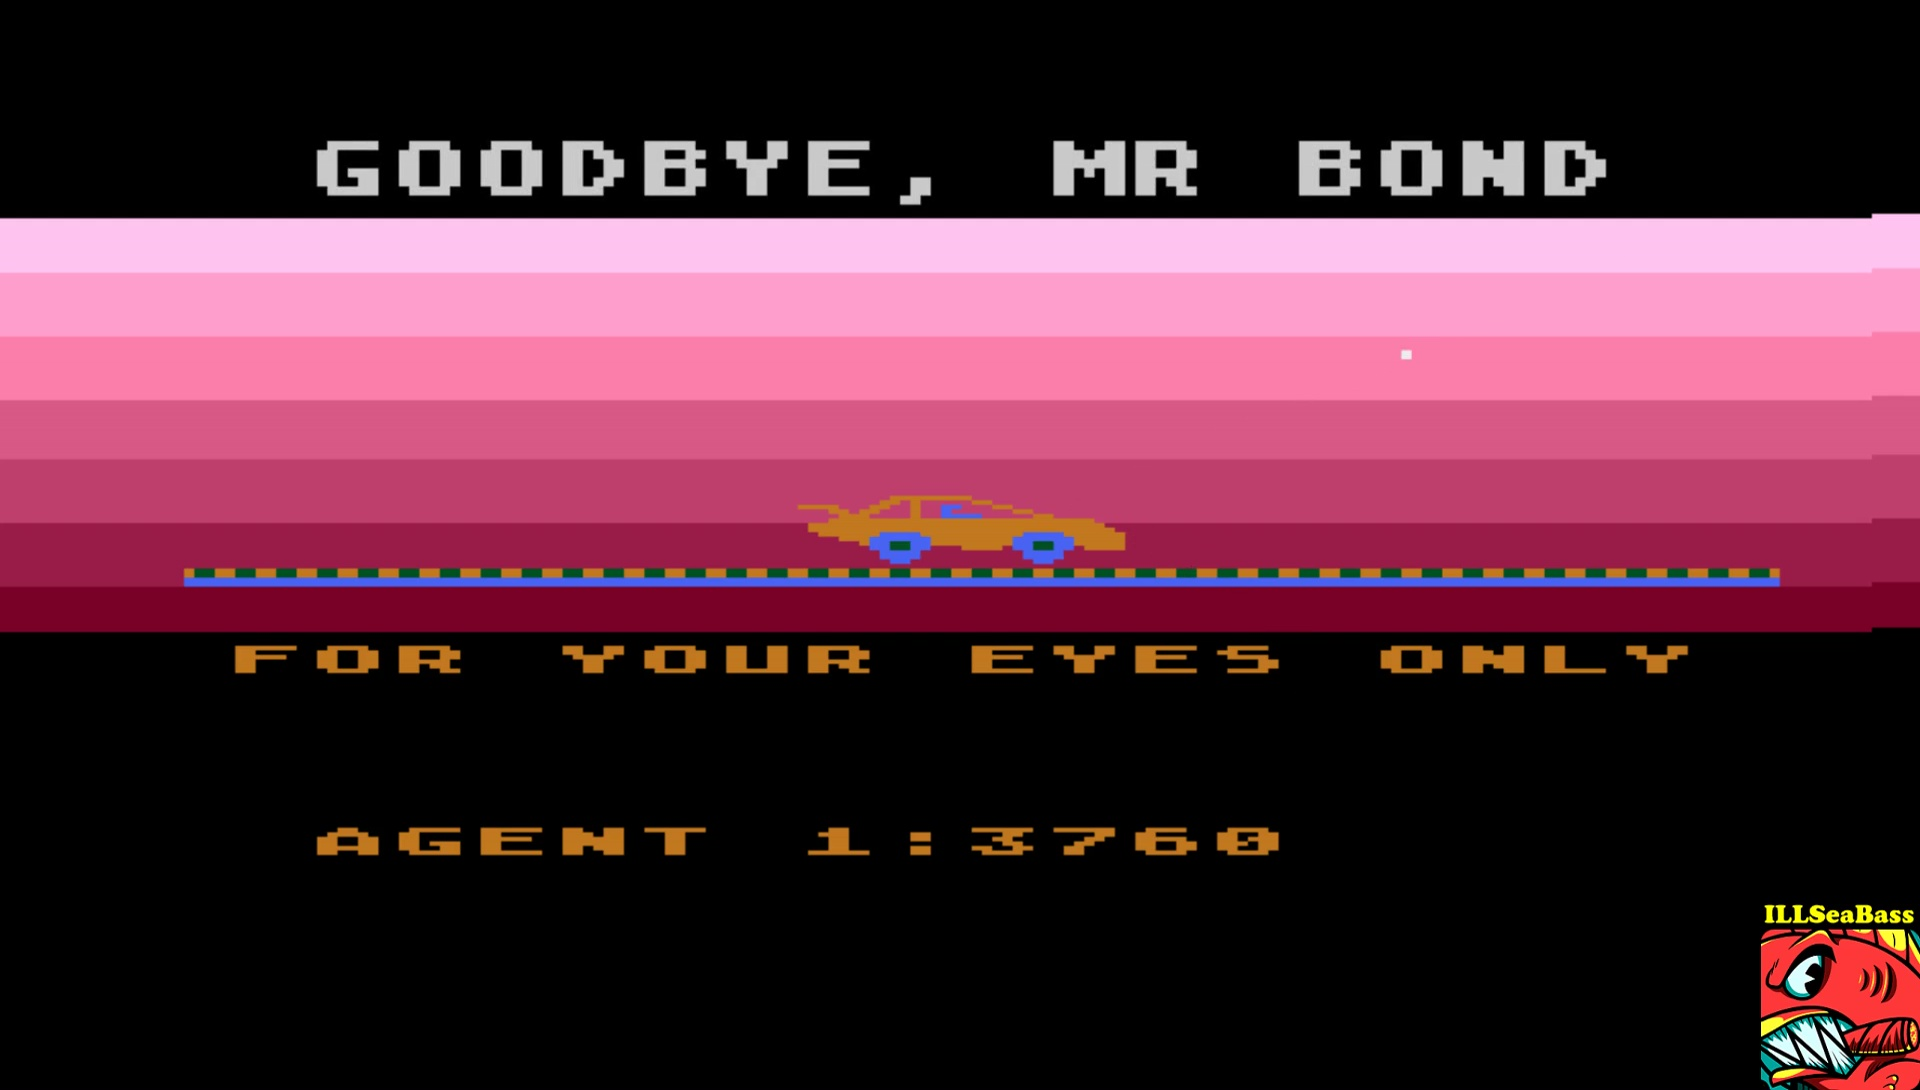 ILLSeaBass: James Bond 007 (Atari 400/800/XL/XE Emulated) 3,760 points on 2017-06-18 23:29:32